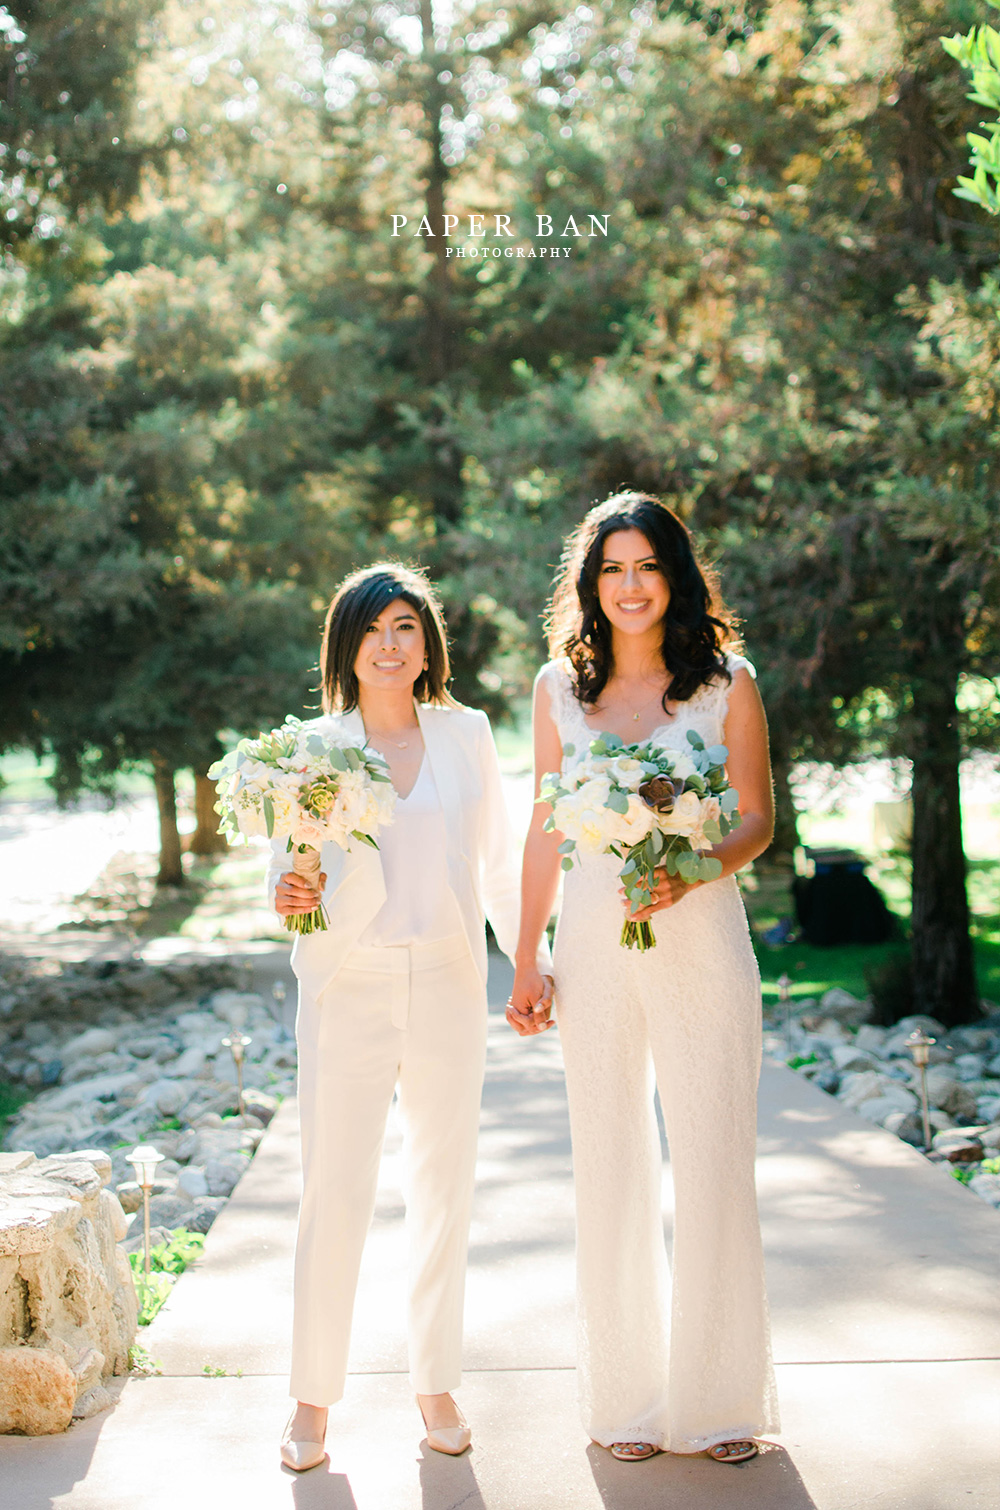 PaperBanPhotography_LosAngeles_LuciaAlexWedding_023